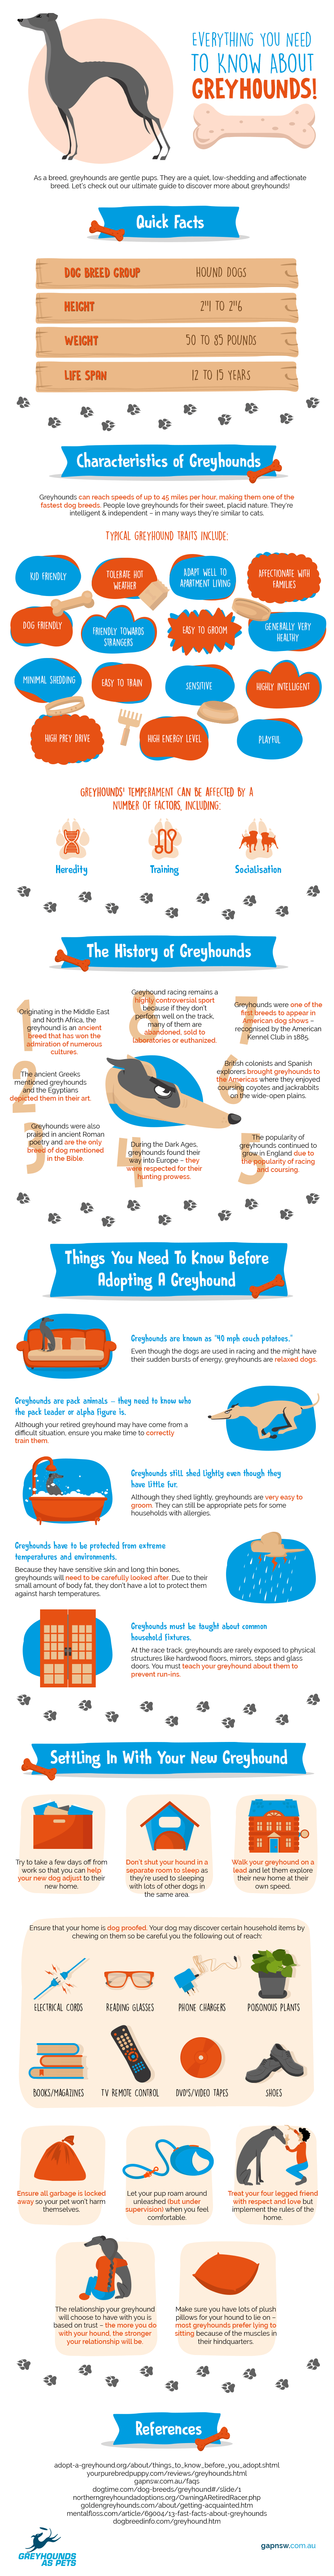 Greyhounds can reach speeds of up to 45 miles per hour (Visual Asset)